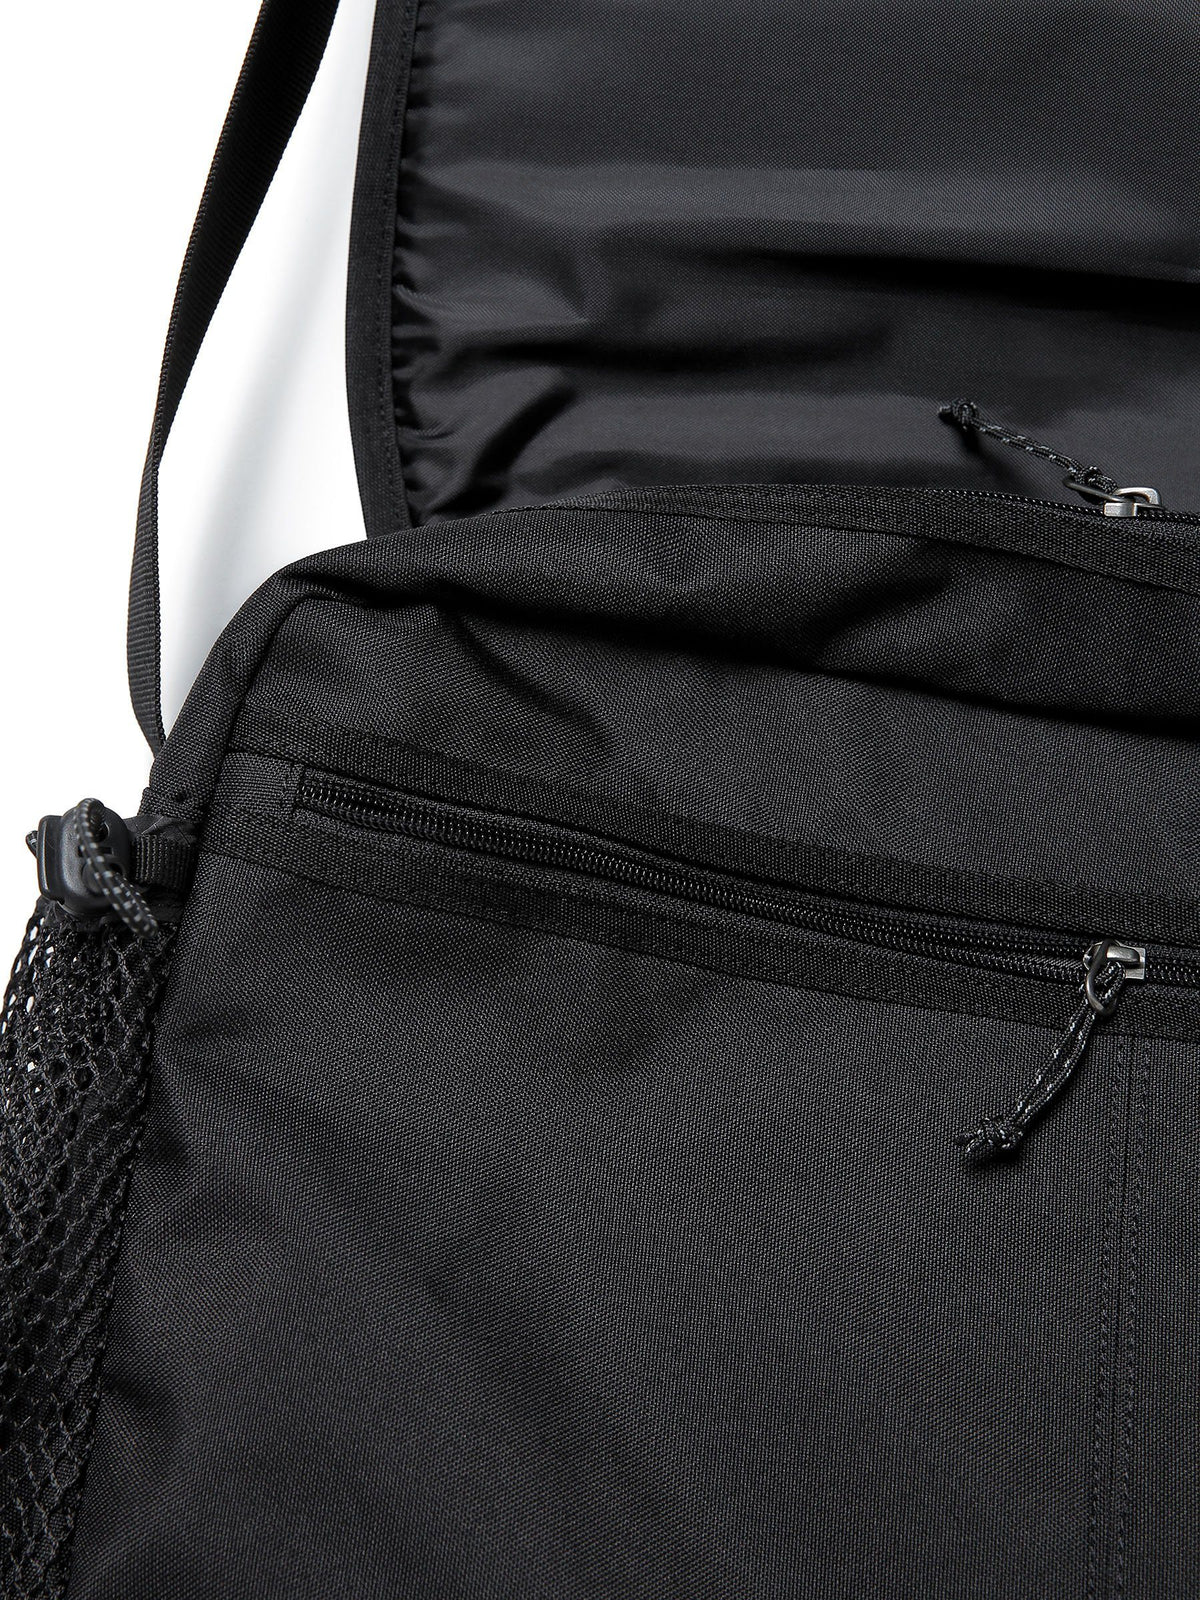 CORDURA® SP Commuter Bag Bag